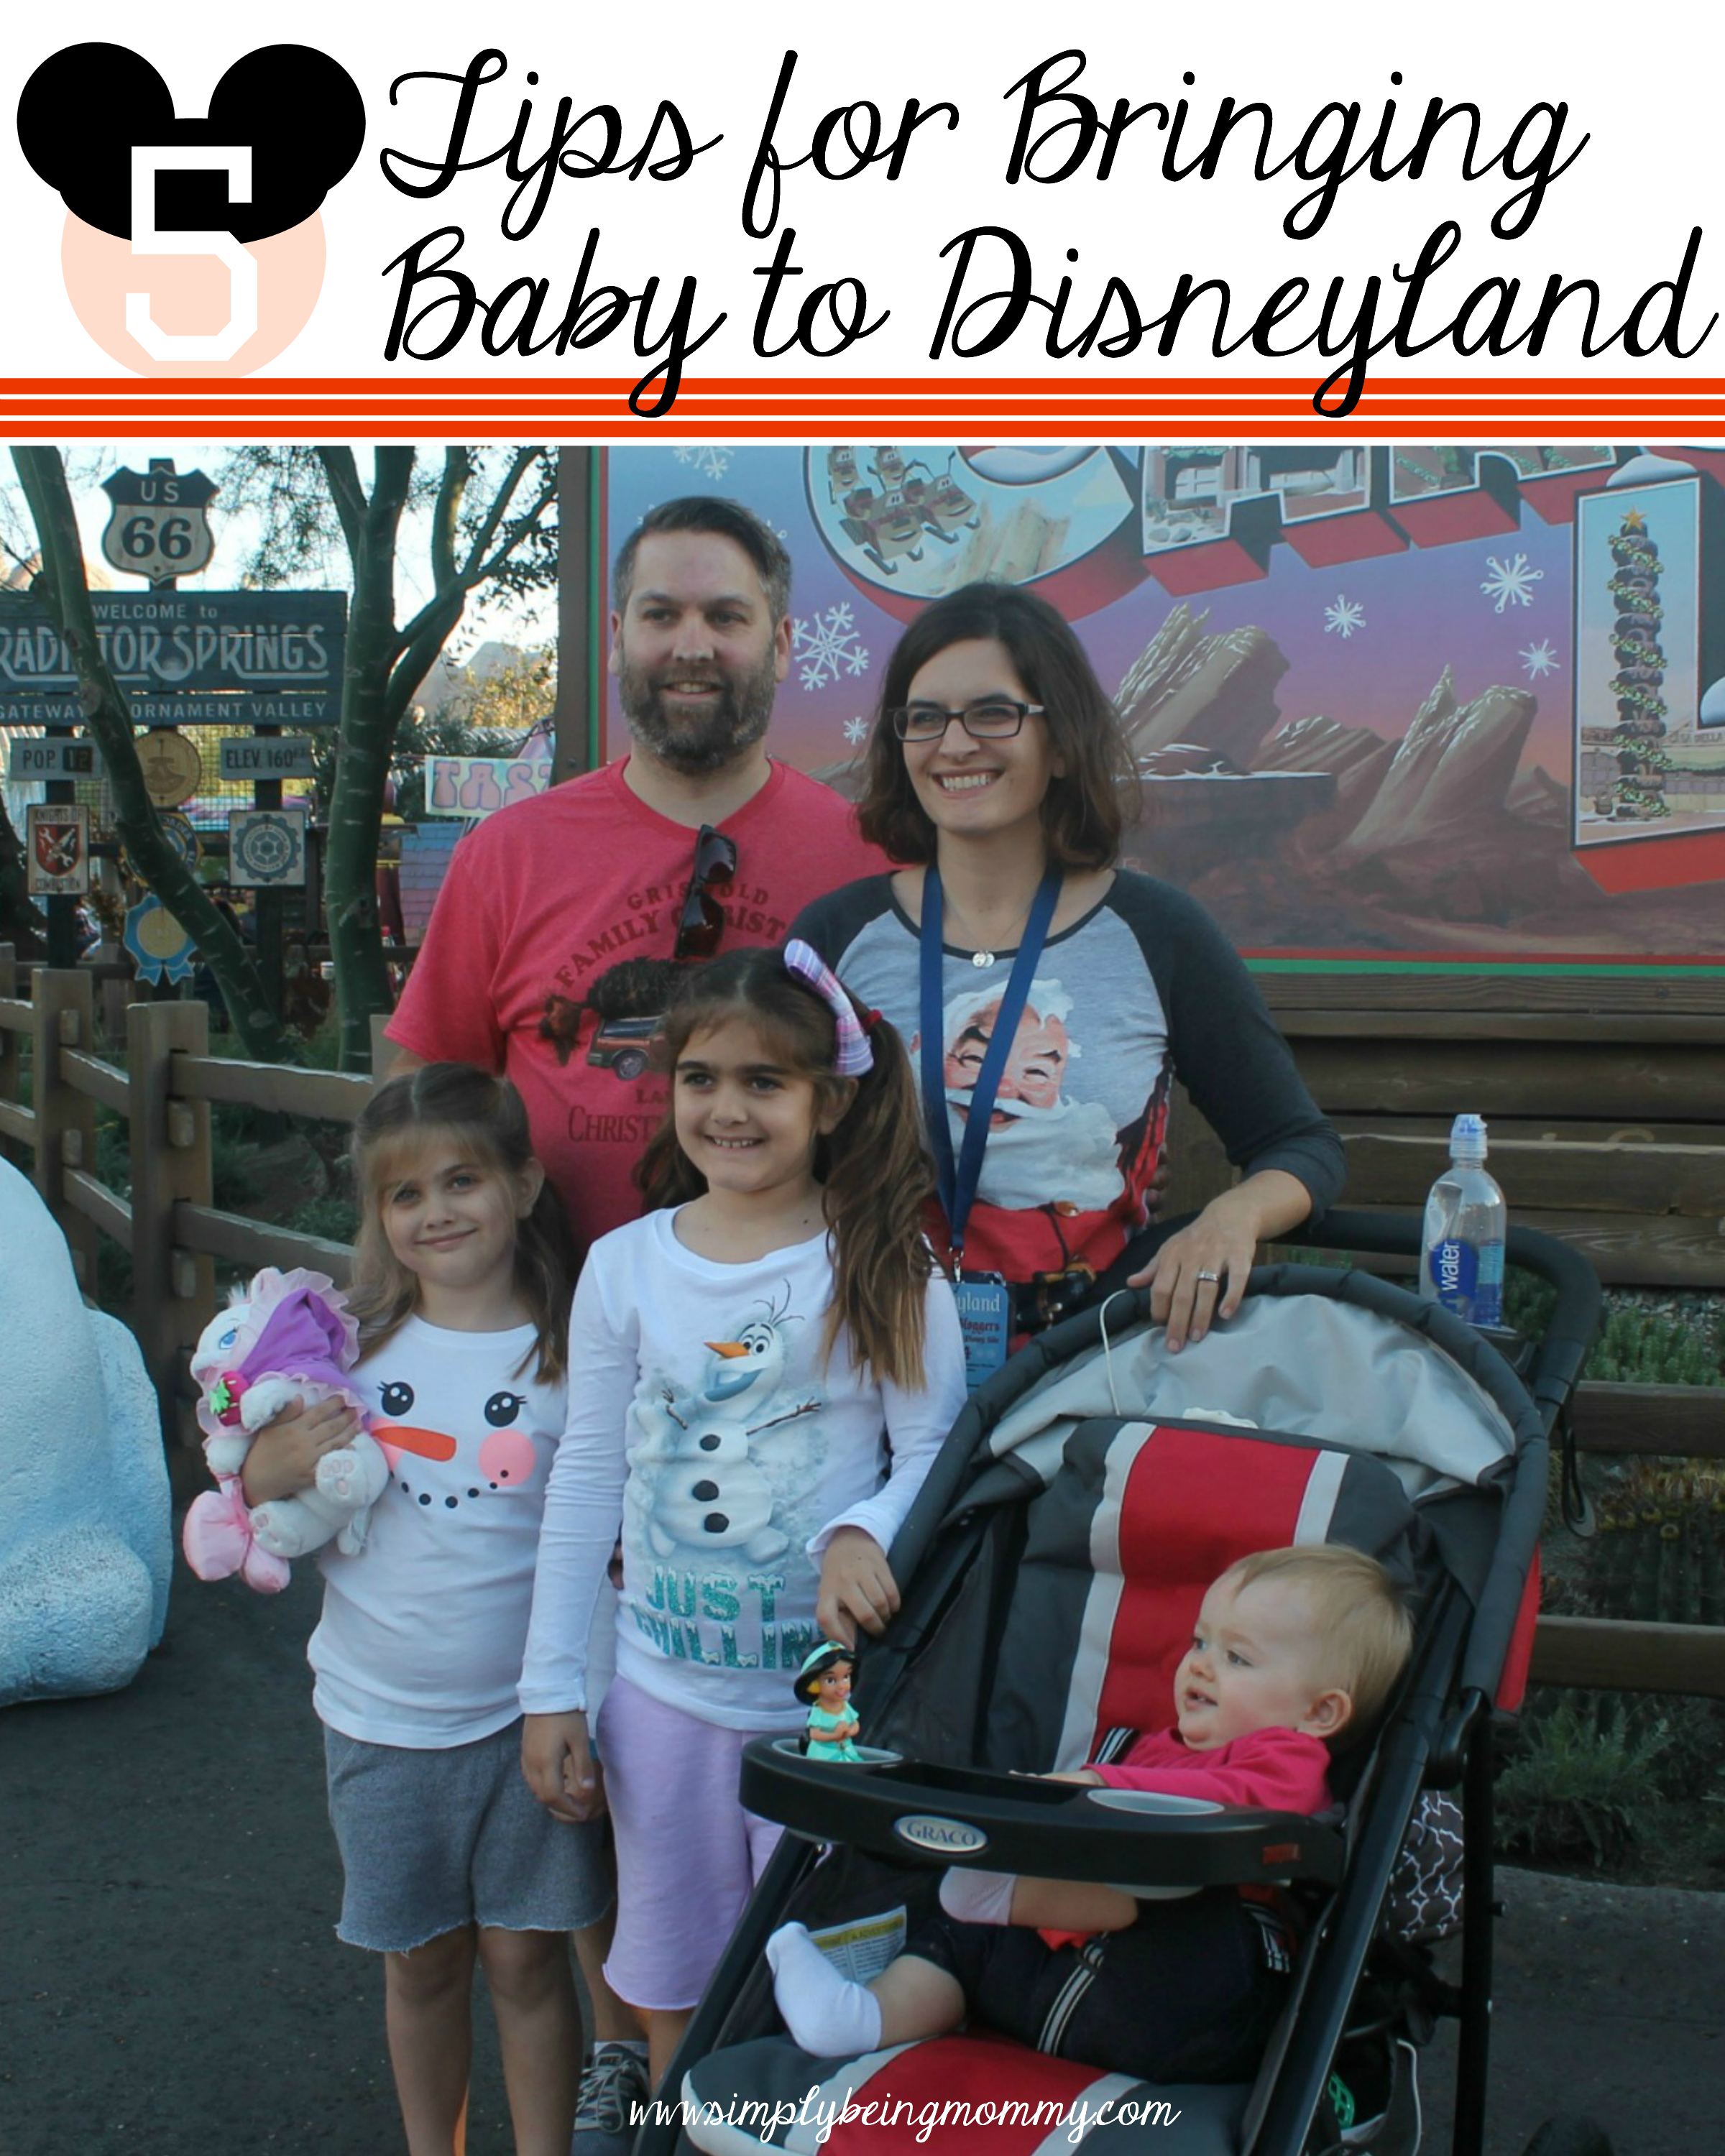 5 tips for bringing baby to disneyland